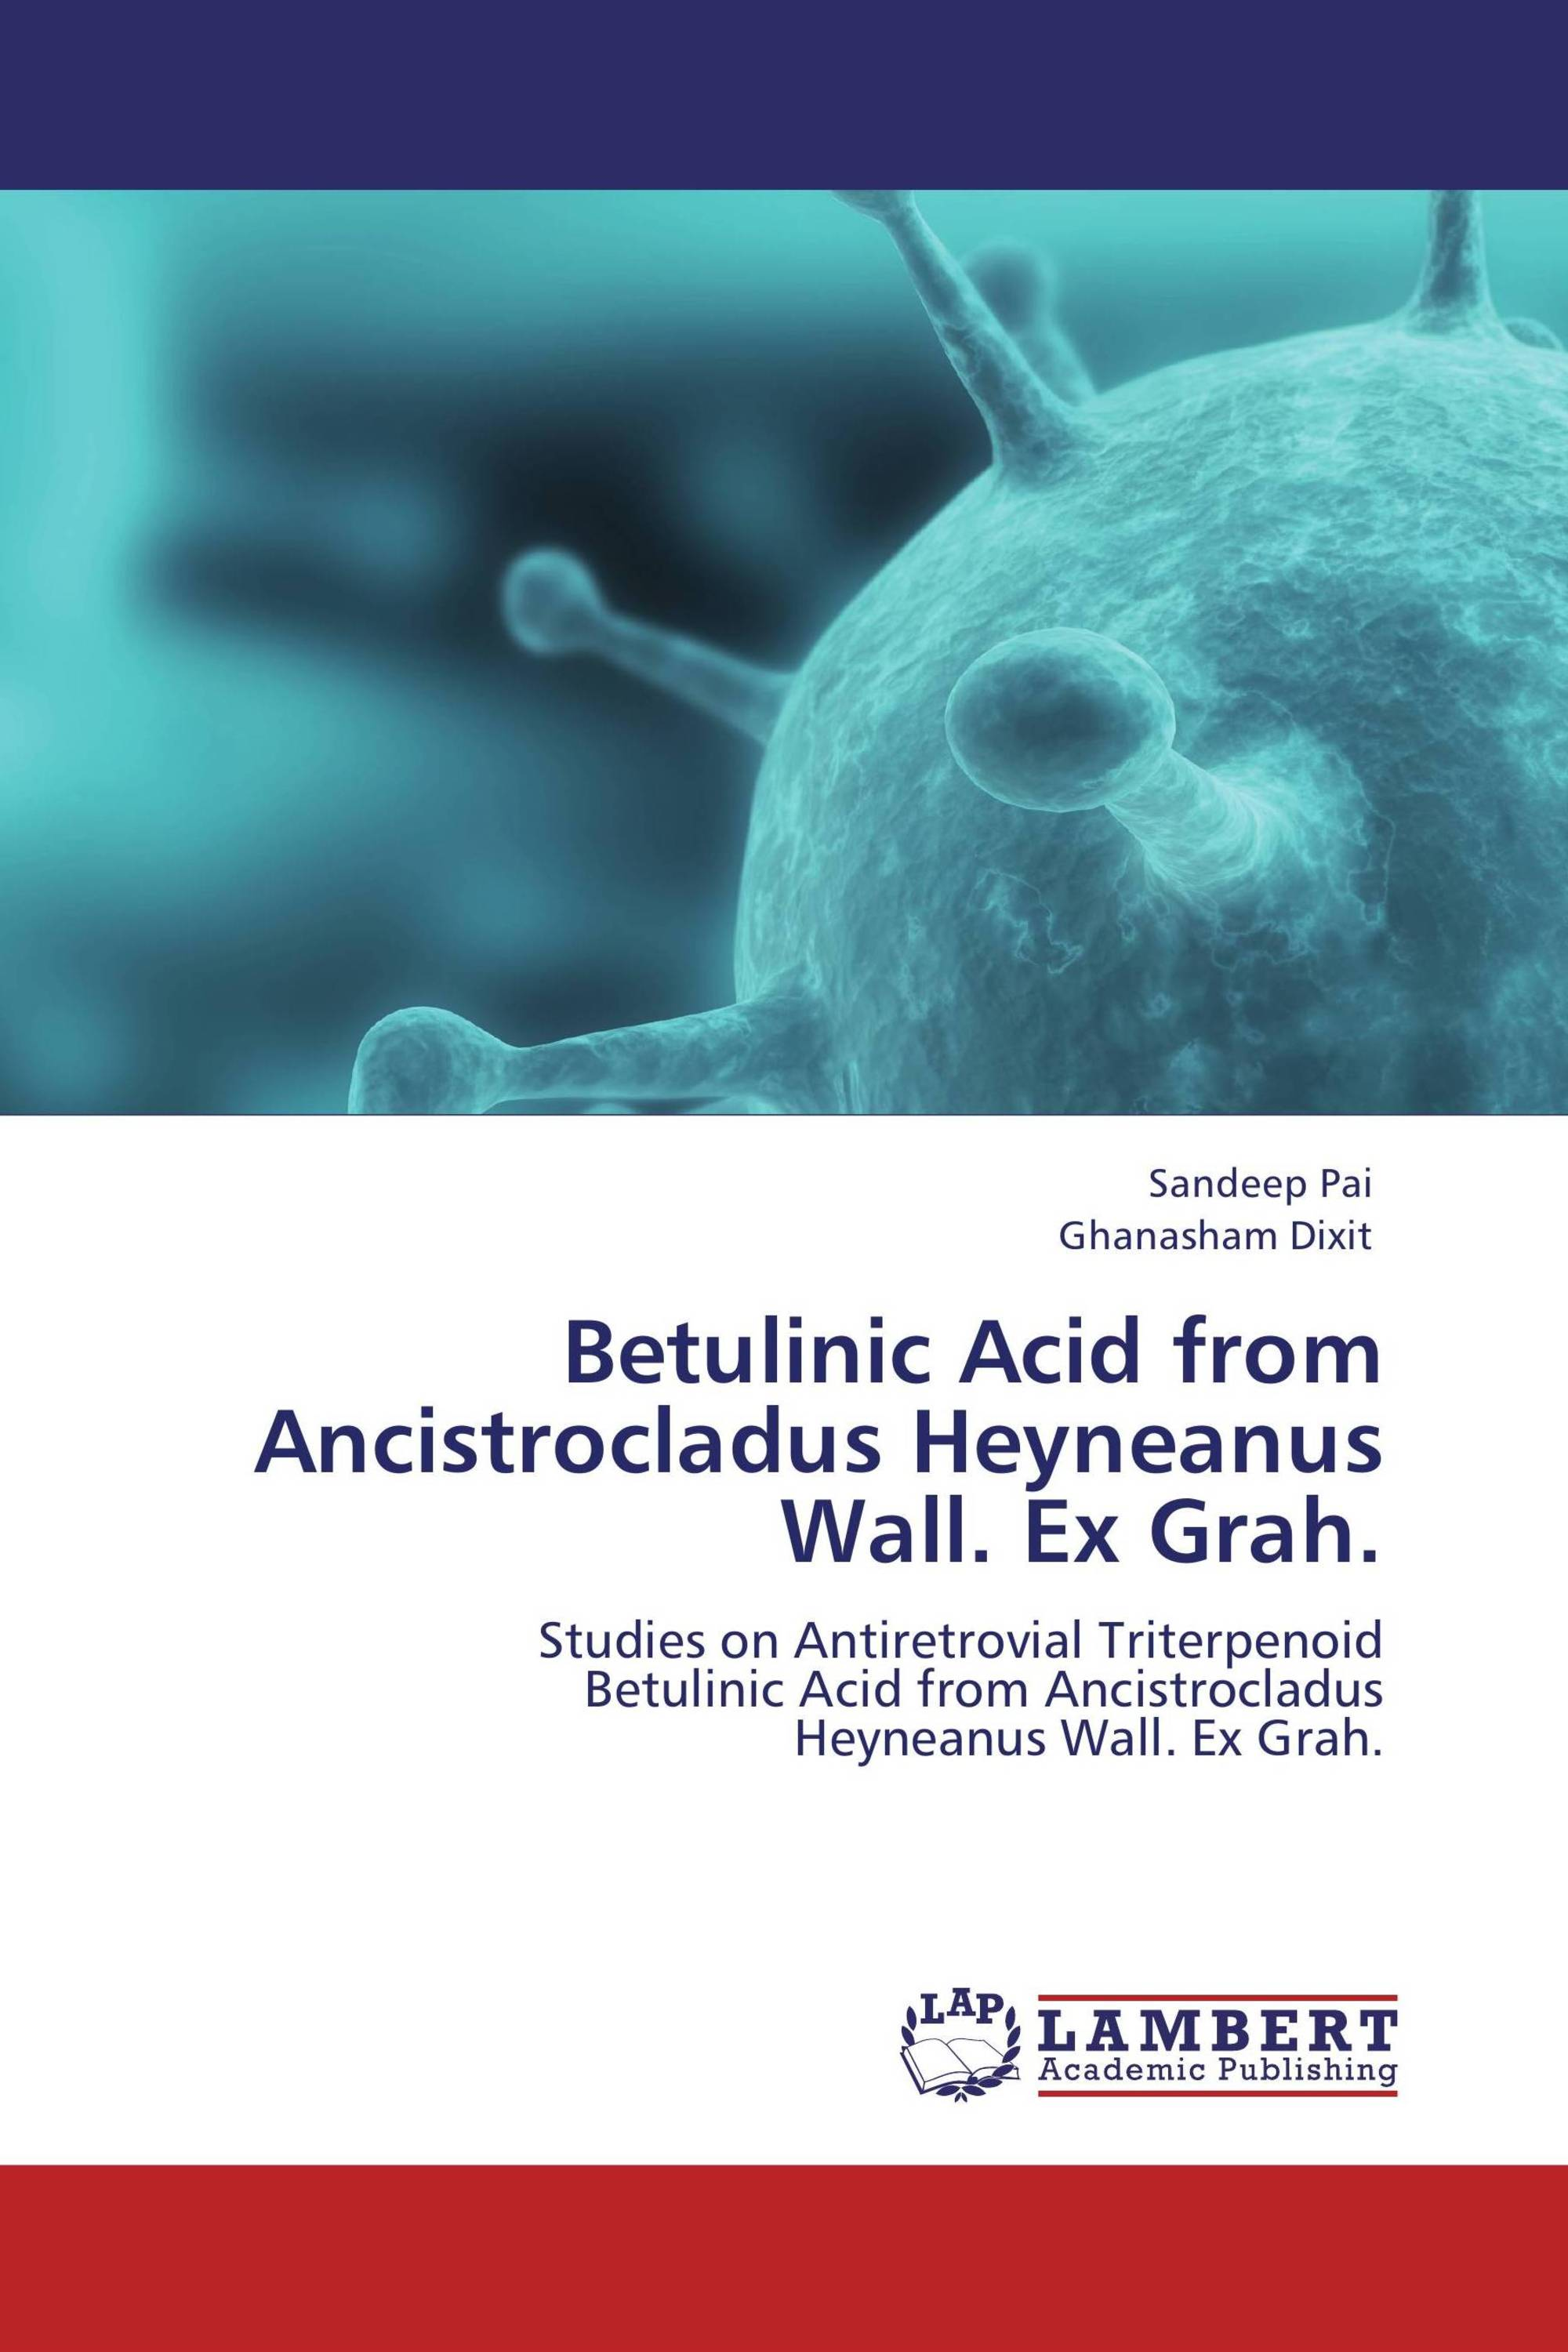 Betulinic Acid from Ancistrocladus Heyneanus Wall. Ex Grah.